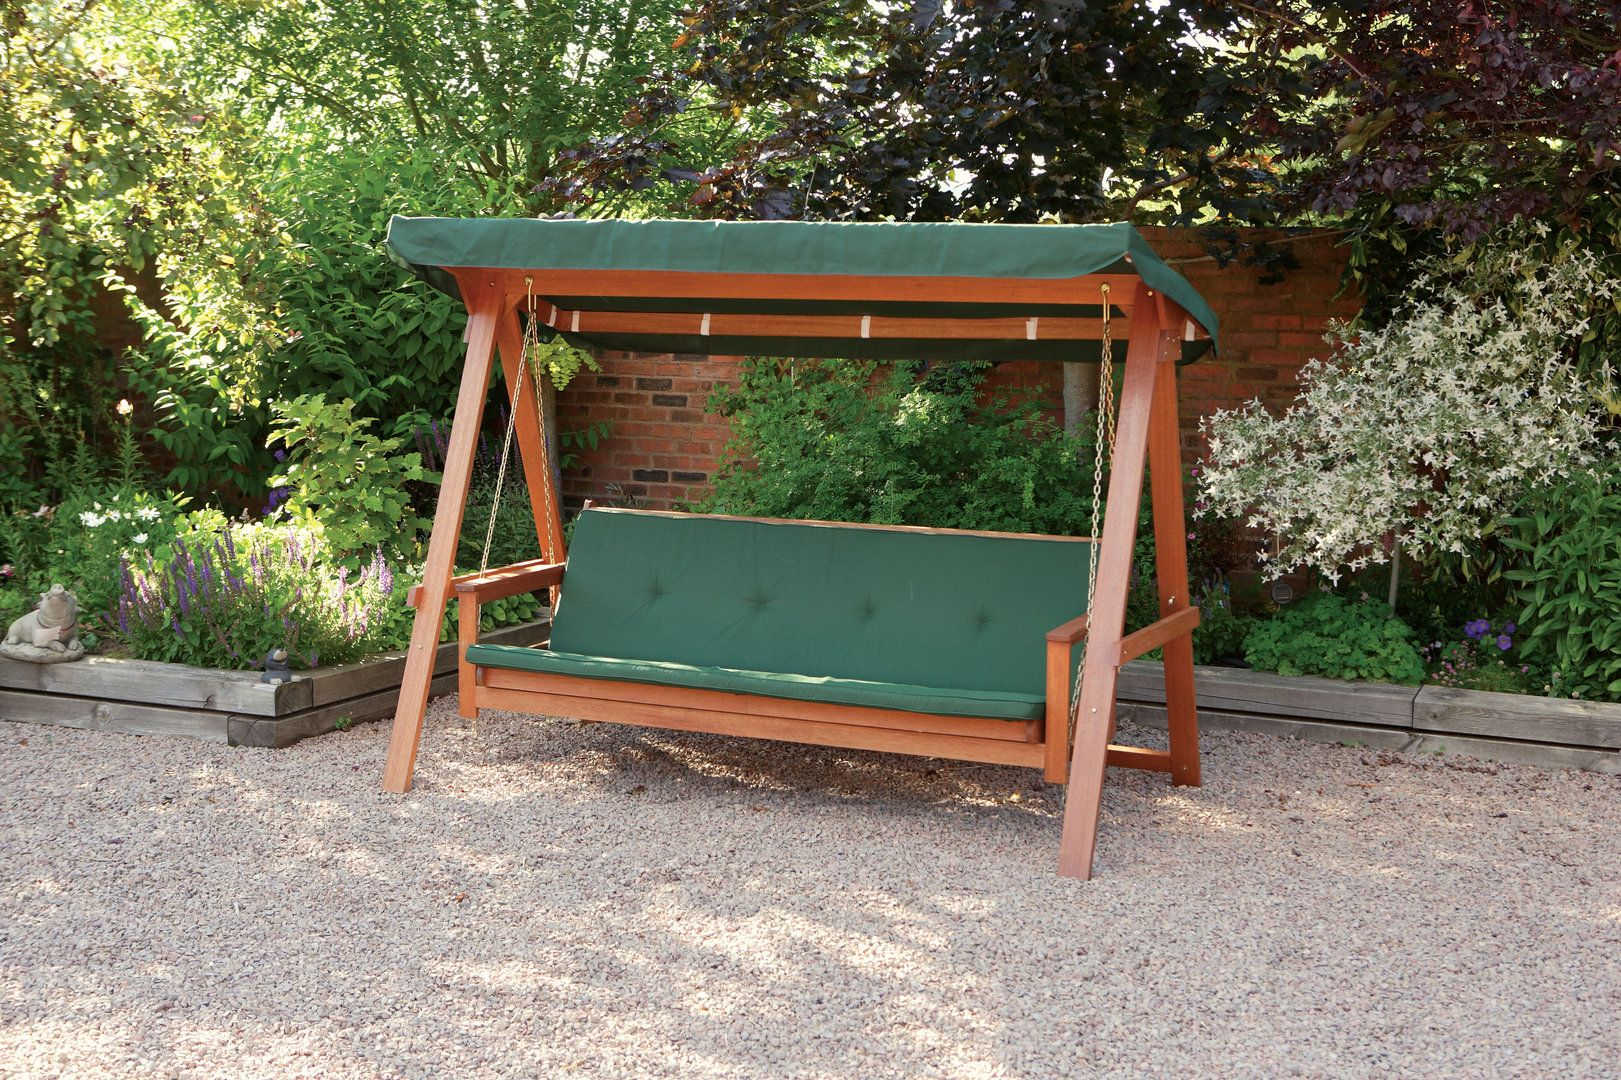 Quality Wooden Swing Bed 3 Seater Garden Swing Seat With For 3 Seater Swings With Frame And Canopy (Image 21 of 25)